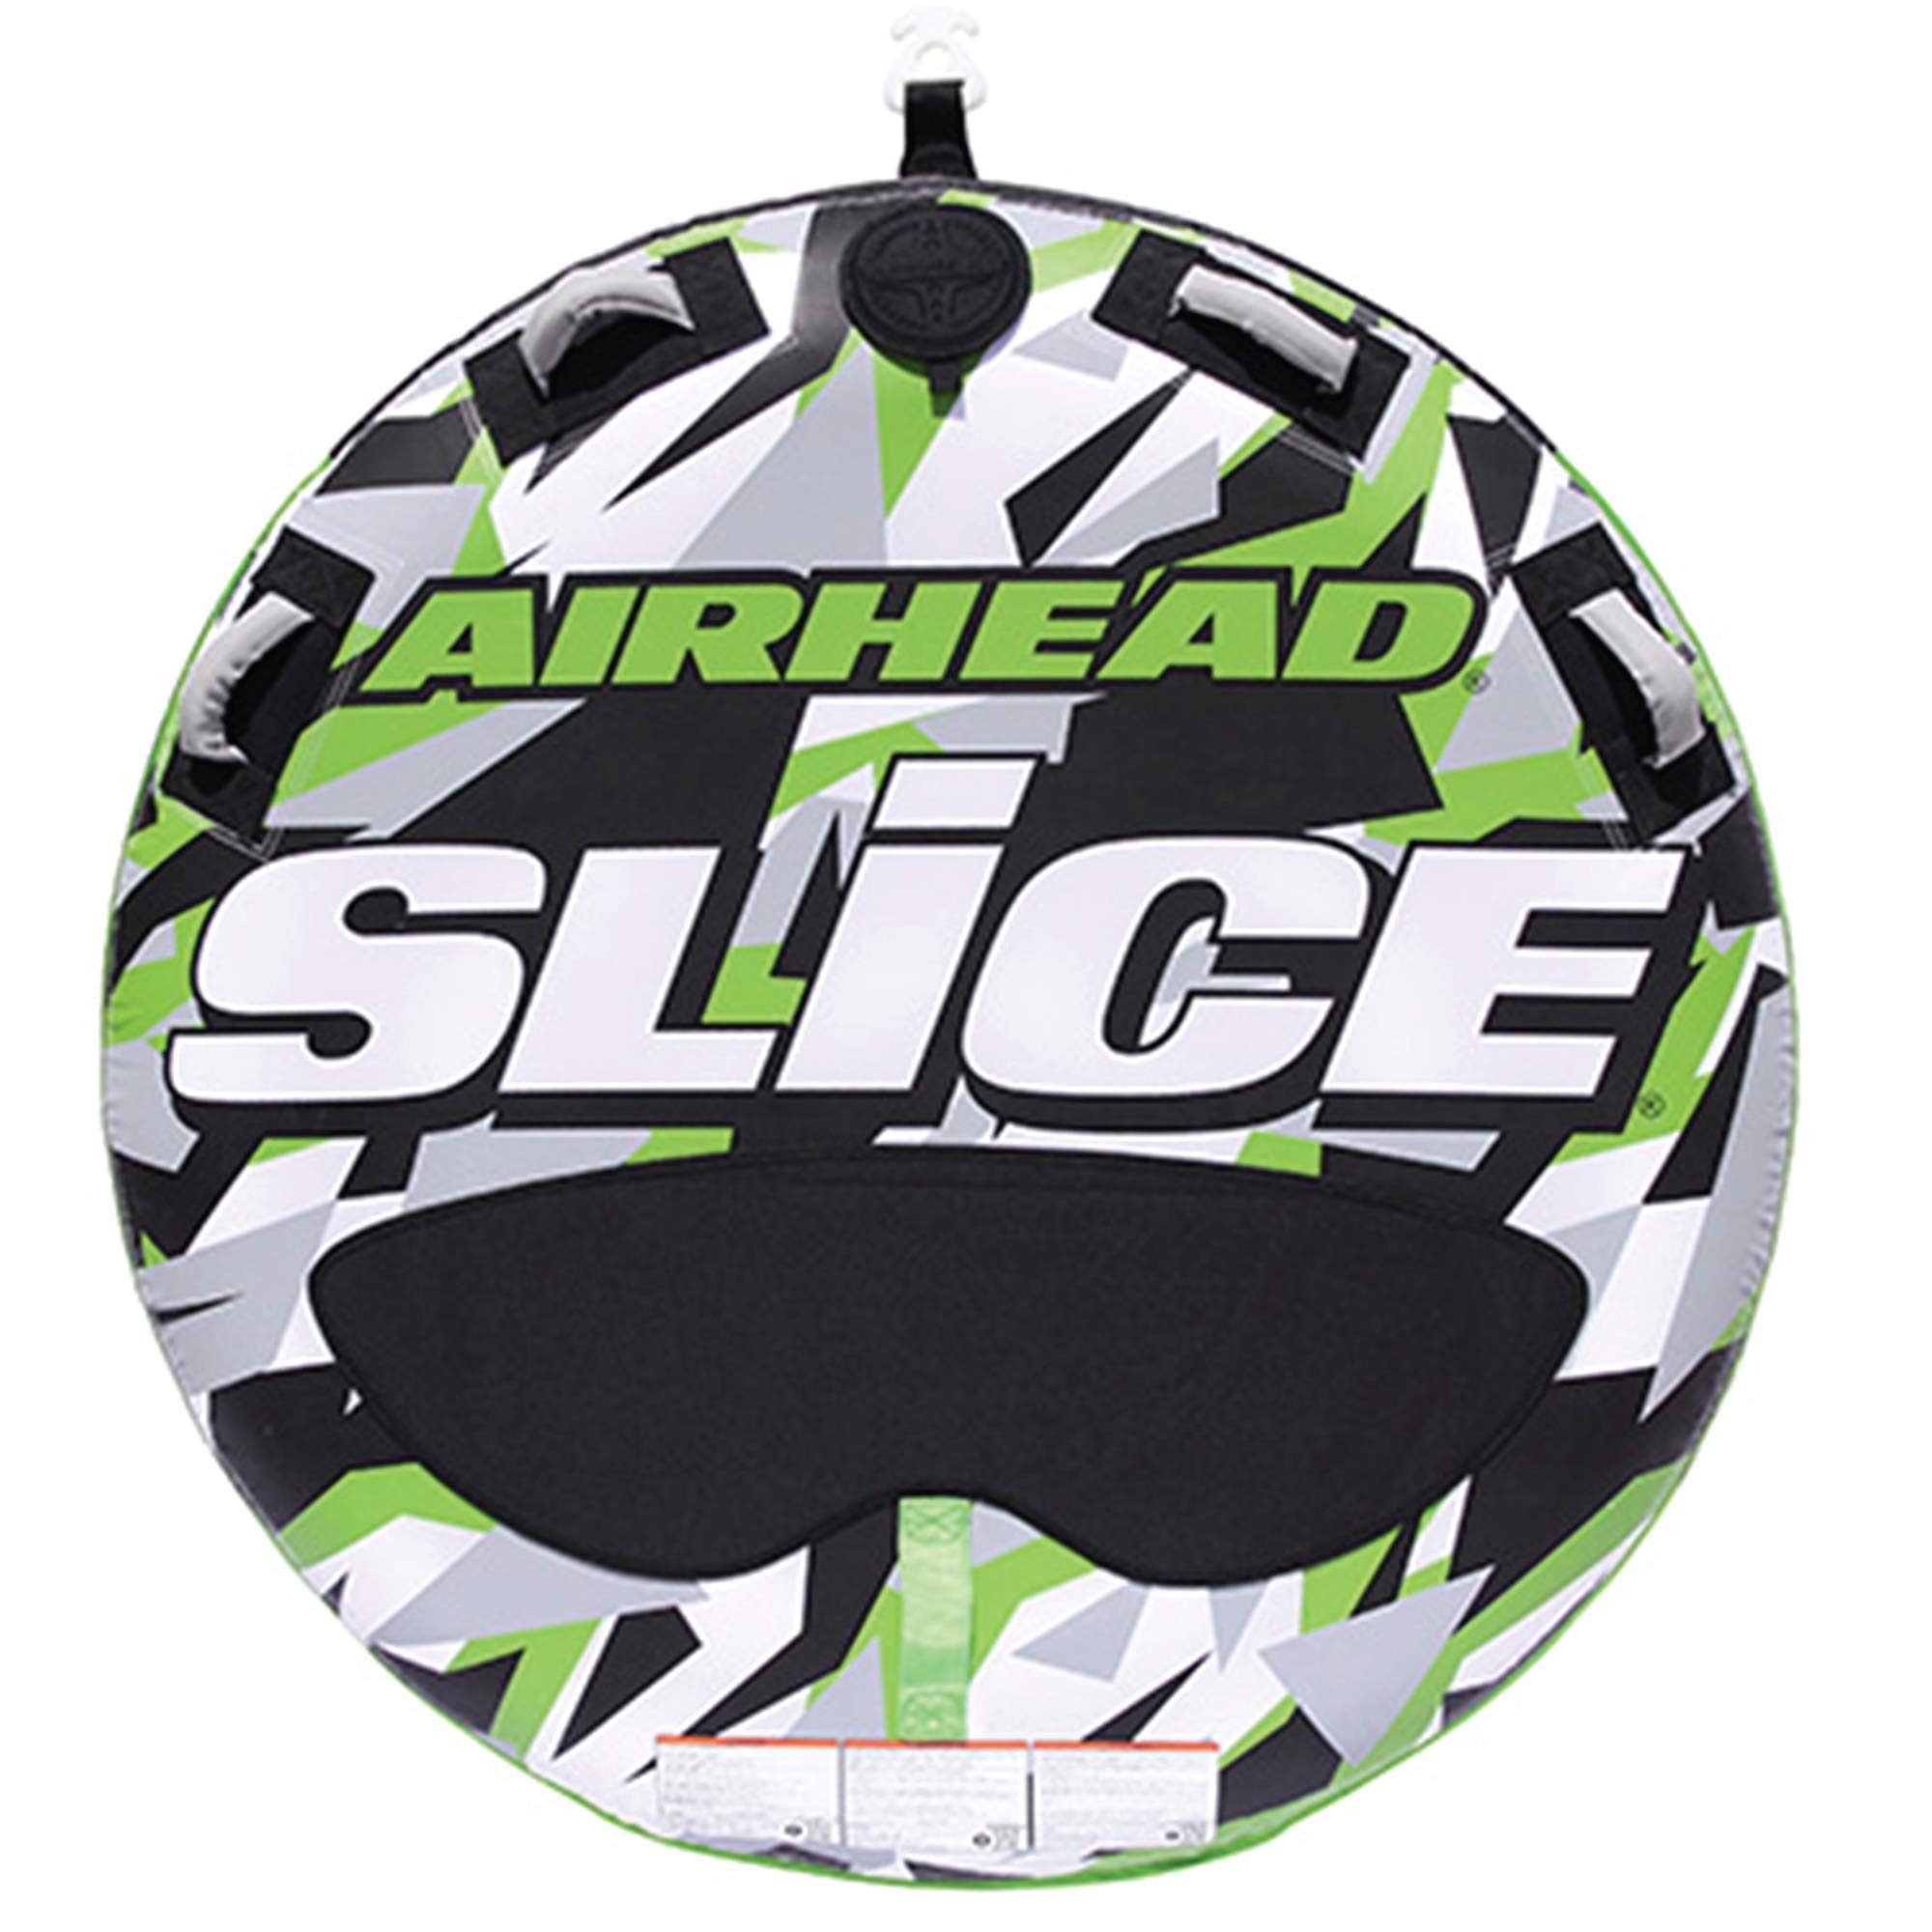 Airhead Slice | 1-2 Rider Towable Tube for Boating by Airhead